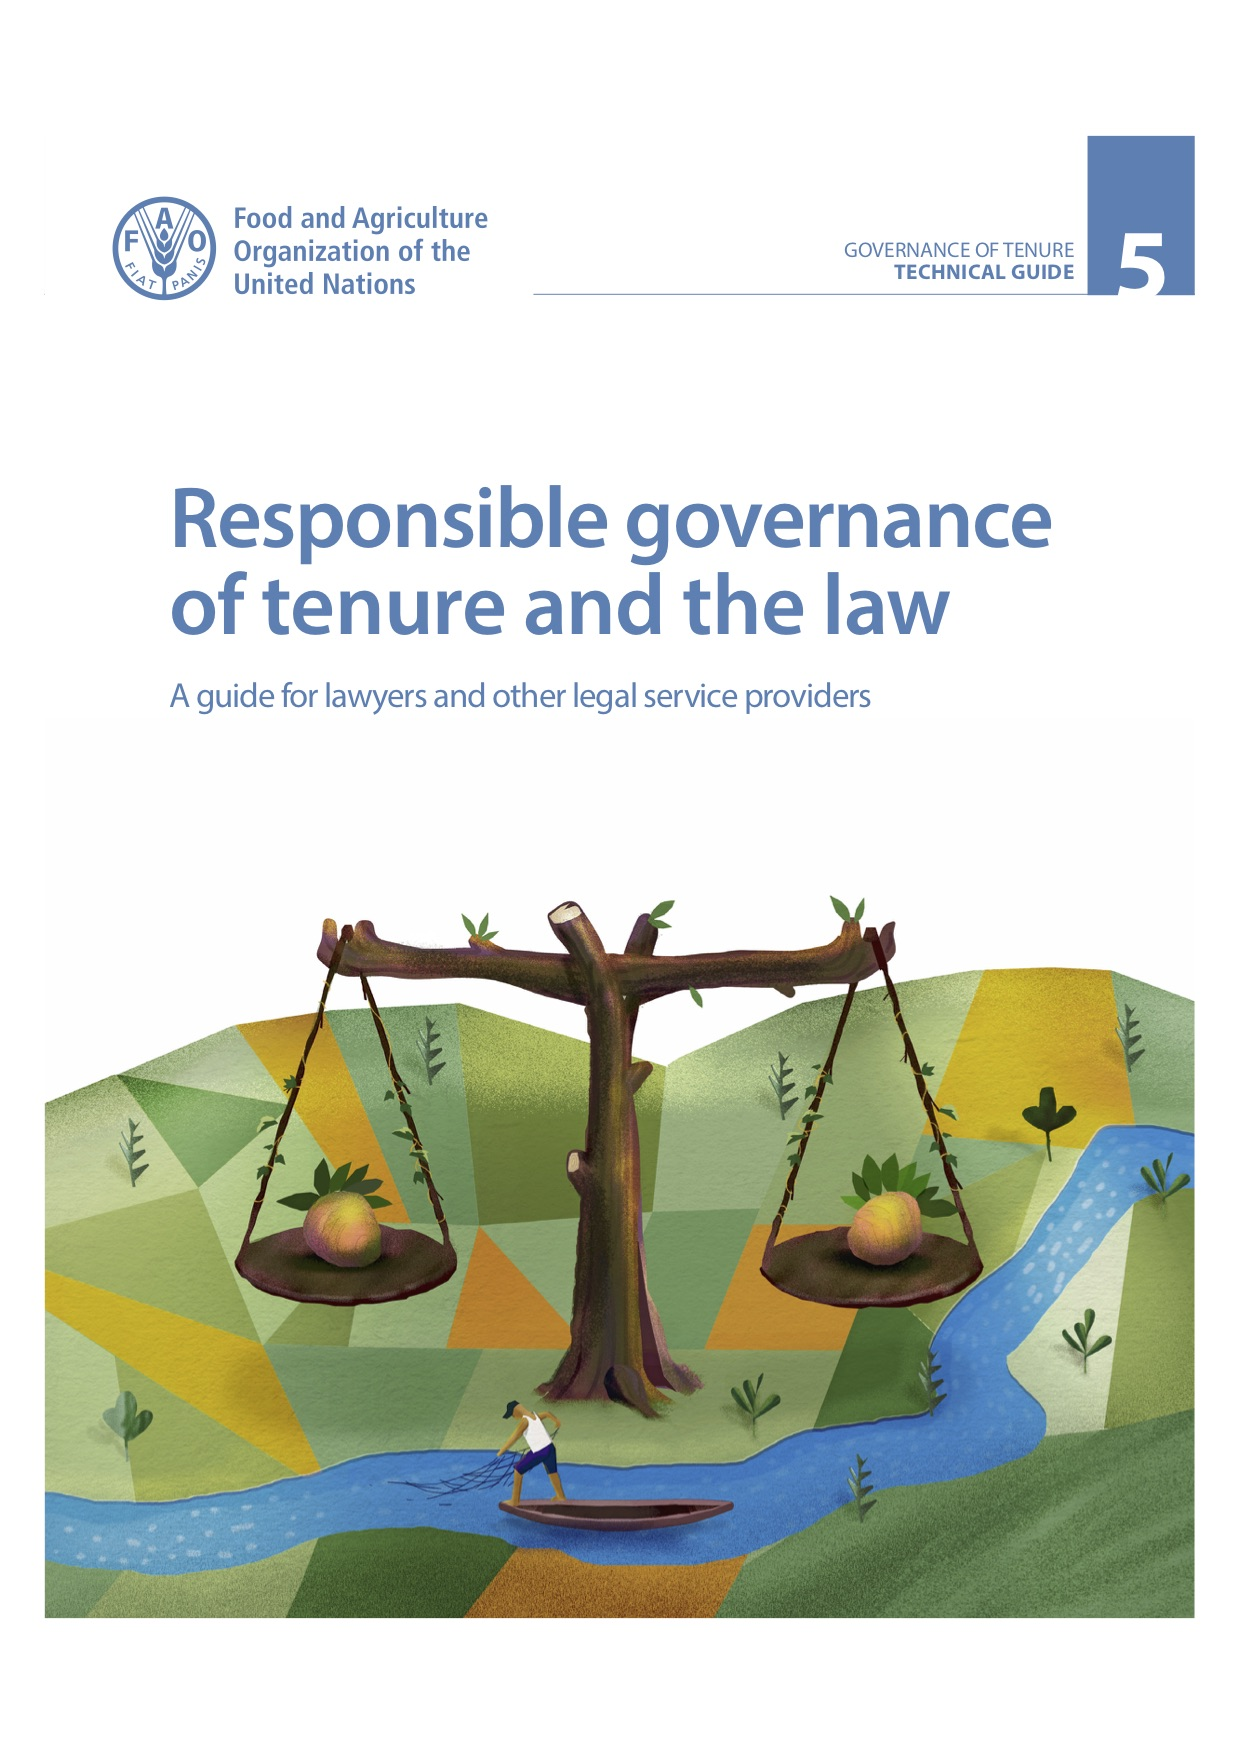 - Co-author of a guide to support lawyer's application of the Committee on World Food Security's Voluntary Guidelines on the Governance of Tenure of Land, Fisheries, and Forestry